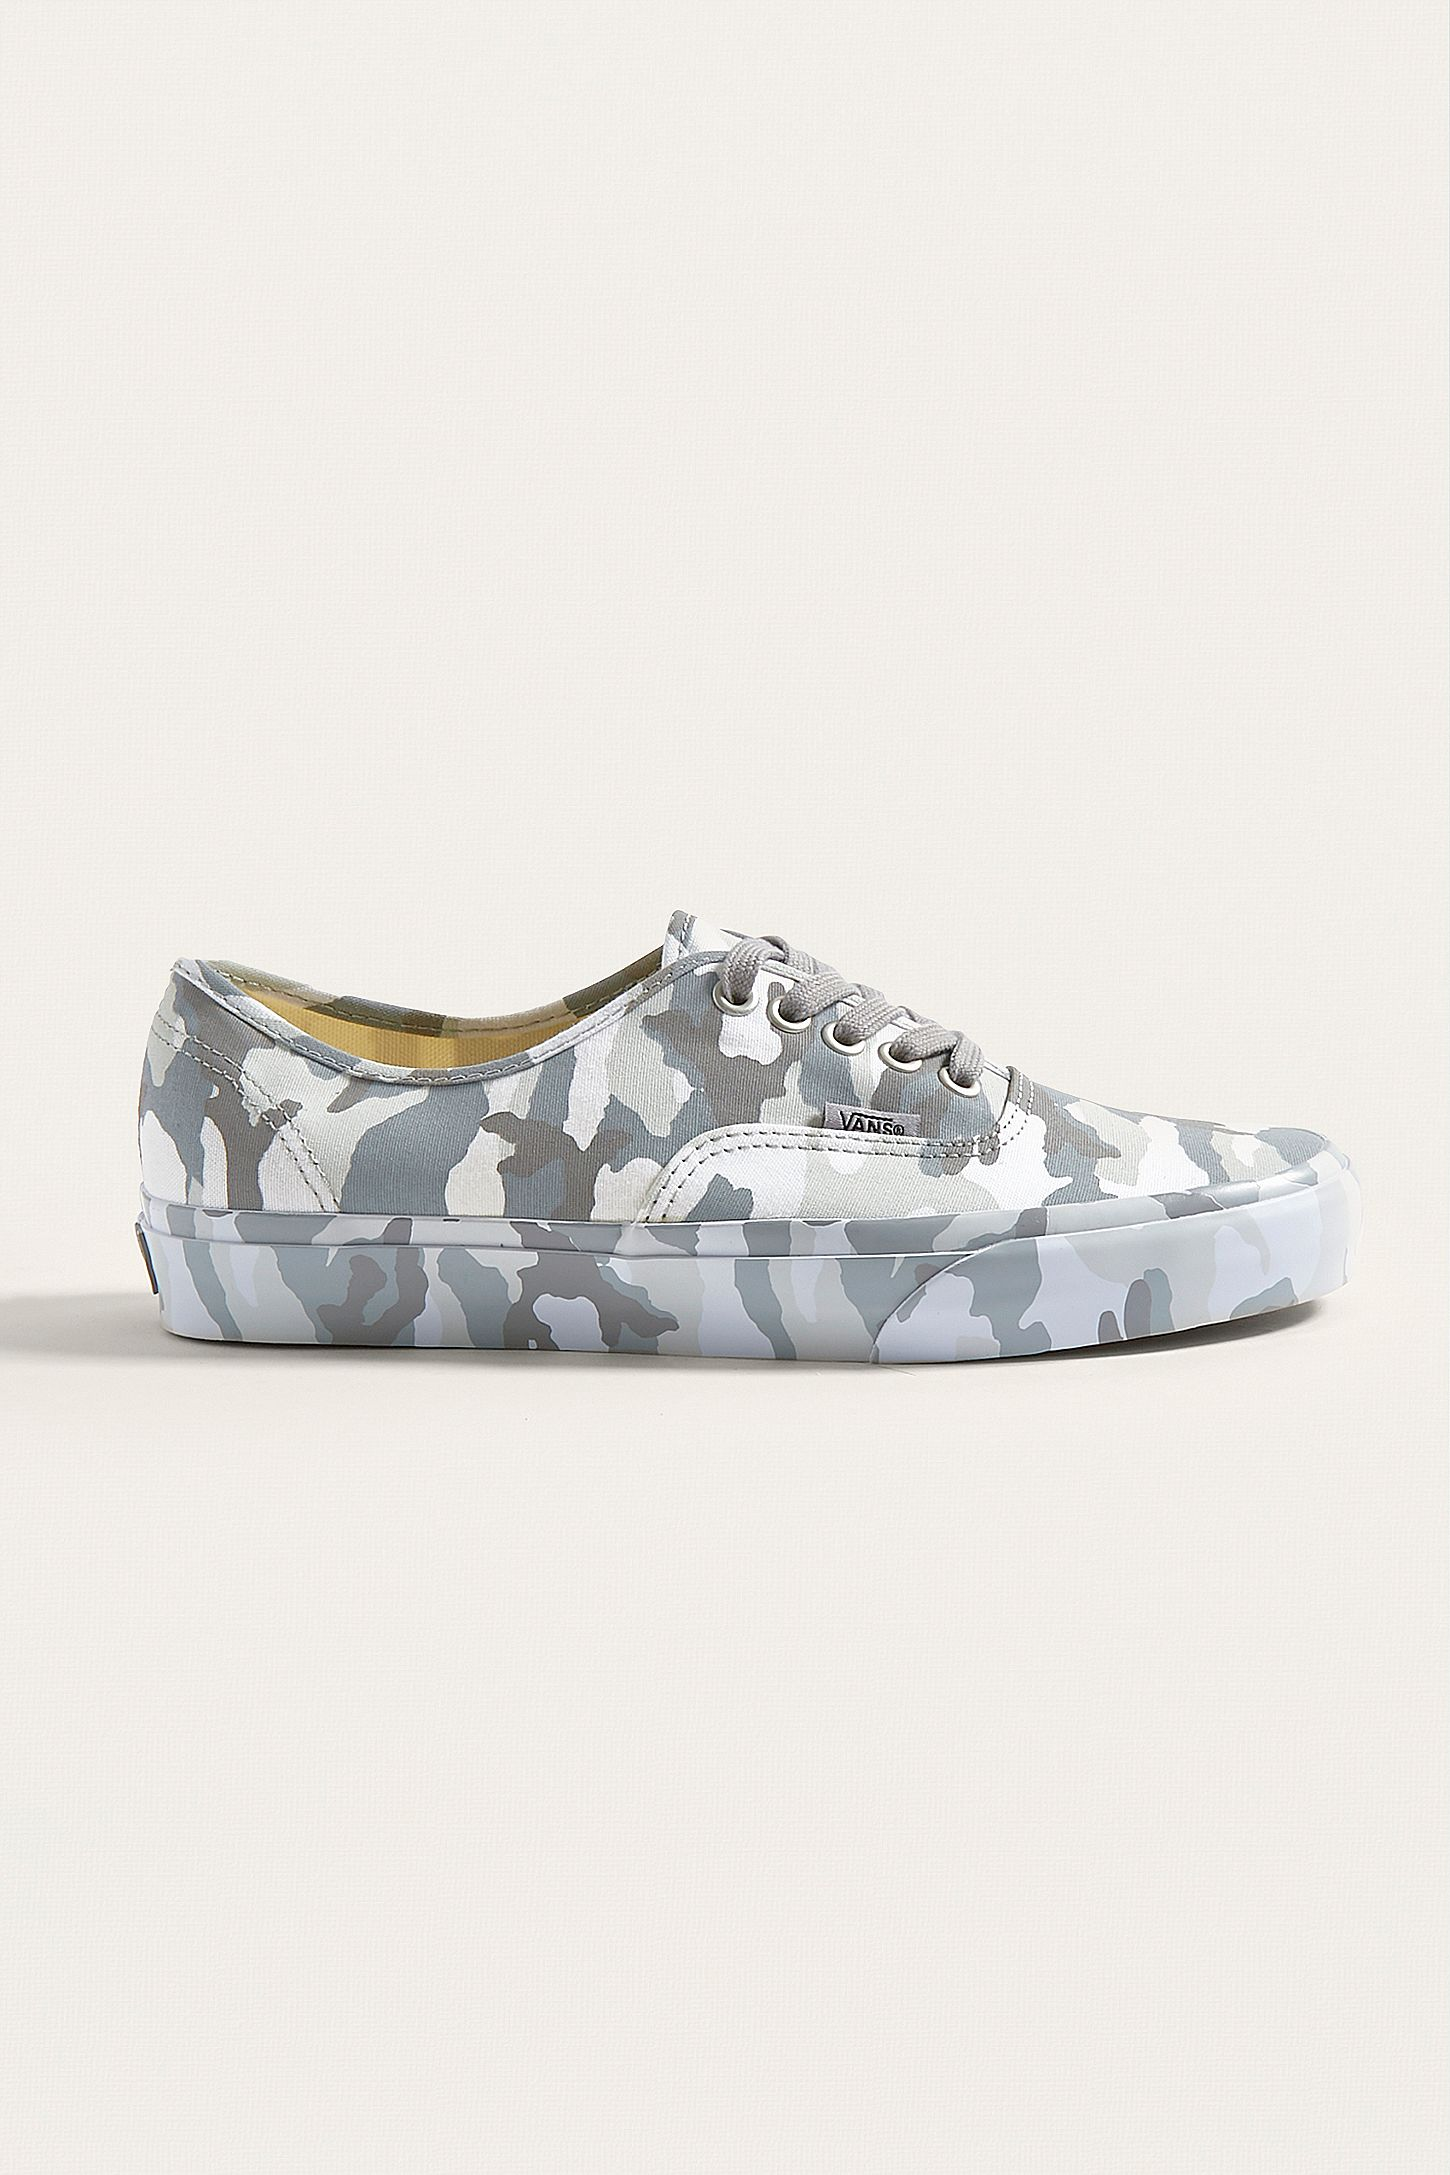 87a1330db0 Vans Authentic Camo Trainers. Click on image to zoom. Hover to zoom. Double  Tap to Zoom